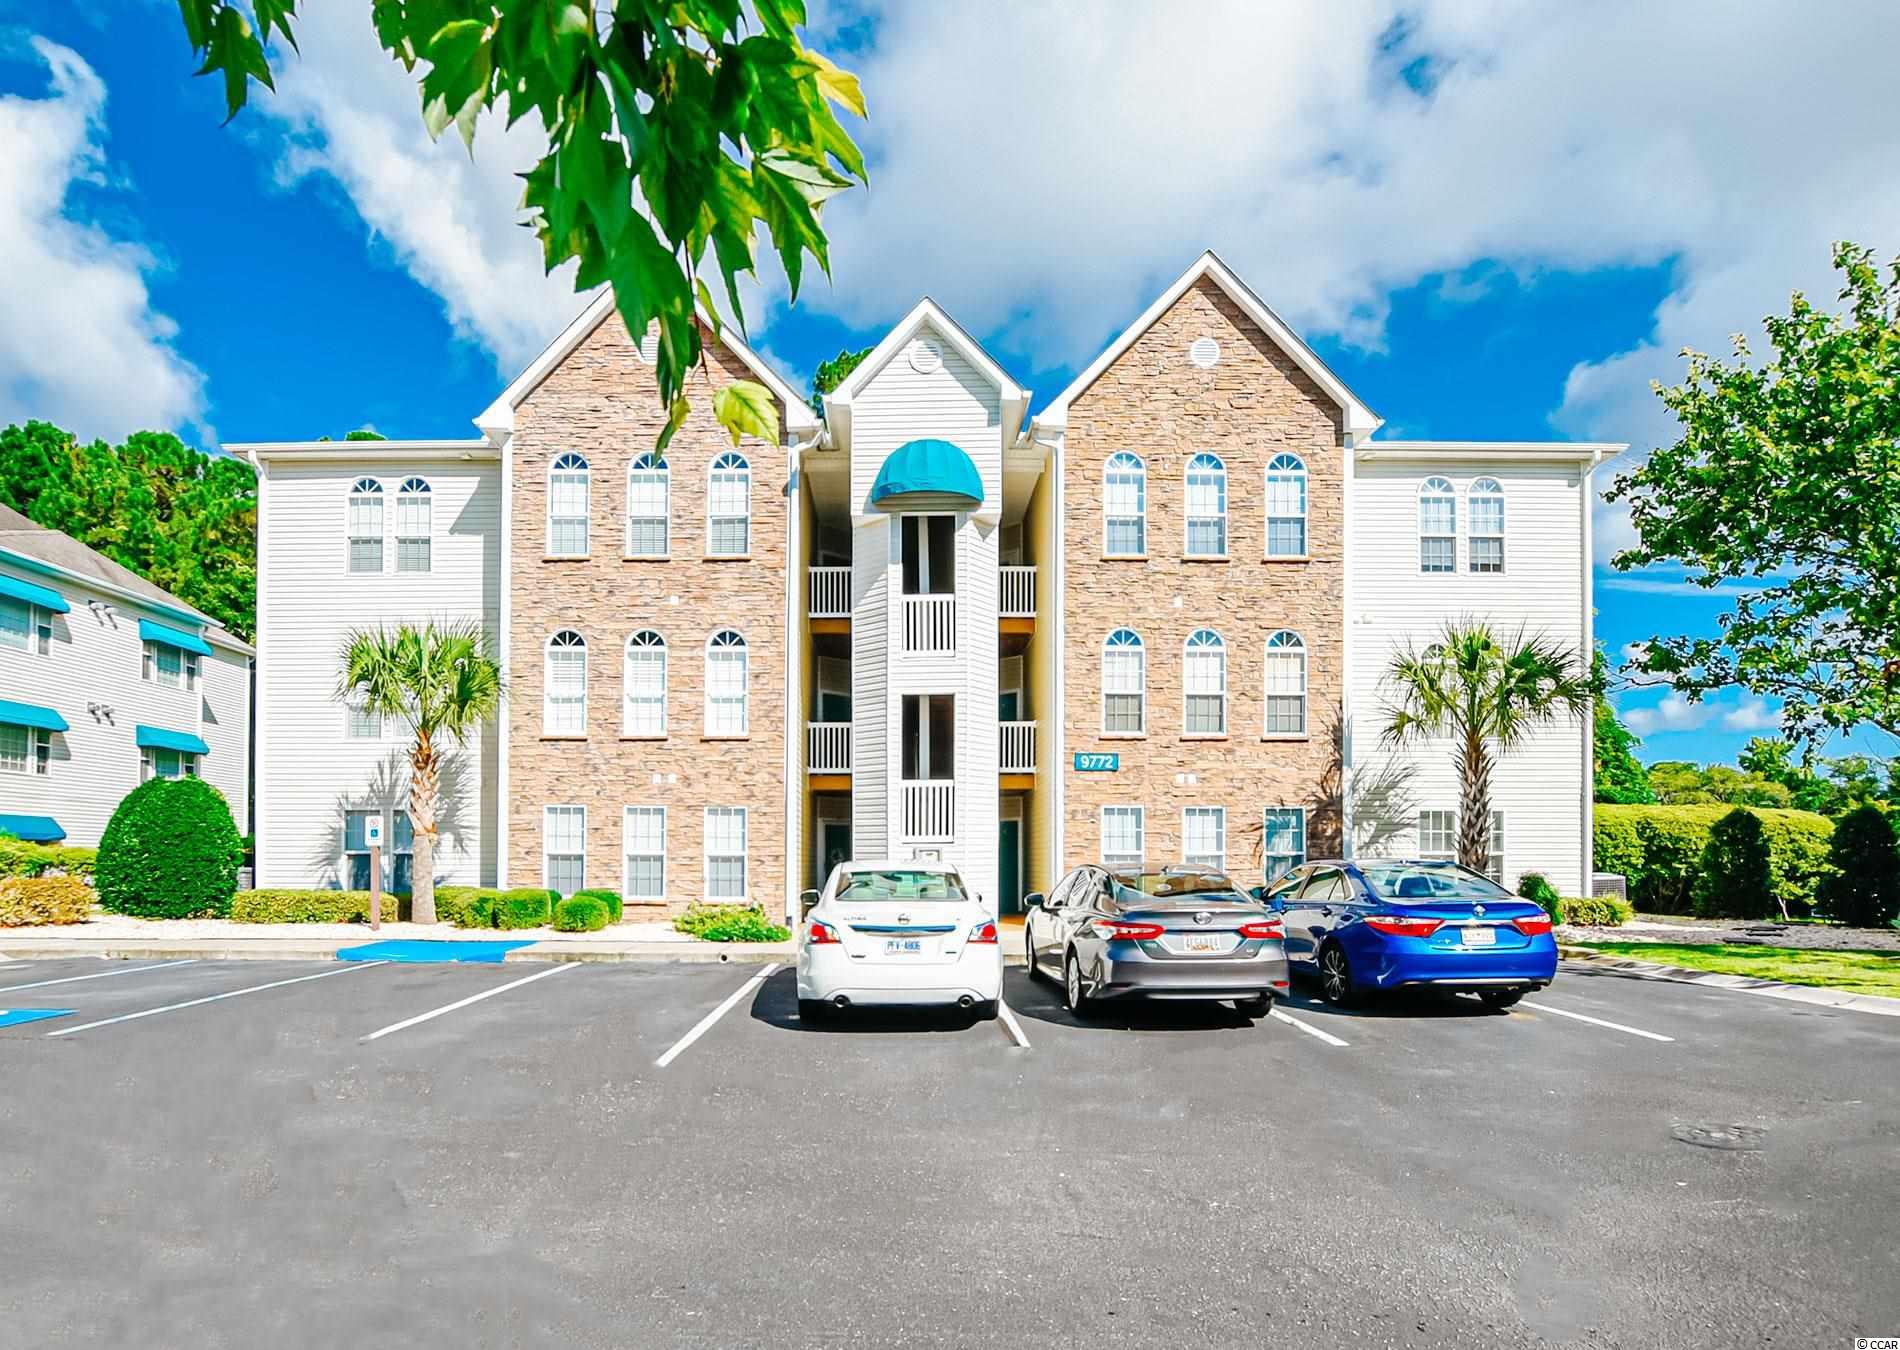 Here's your new fully furnished 2 bedroom 2 bath condo with a Carolina Room in one of the most sought after locations in the Arcadian area in the gated community of Savannah Shores. You will love these oversized bedrooms and walk-in-closets.  Relax in your spacious living room with fireplace and vaulted ceilings or sip your favorite hot beverage while reading a novel in the bright light of your Carolina Room.  And later go down and enjoy the outdoor amenities including a pool, clubhouse, tennis courts, volley ball, putting green, or playground.  Prime location for a short golf cart ride to the beach, shopping, activities.  Golf cart friendly development with gas or electric allowed for a small permit fee. And there are Electric Charging stations available at locations in the development